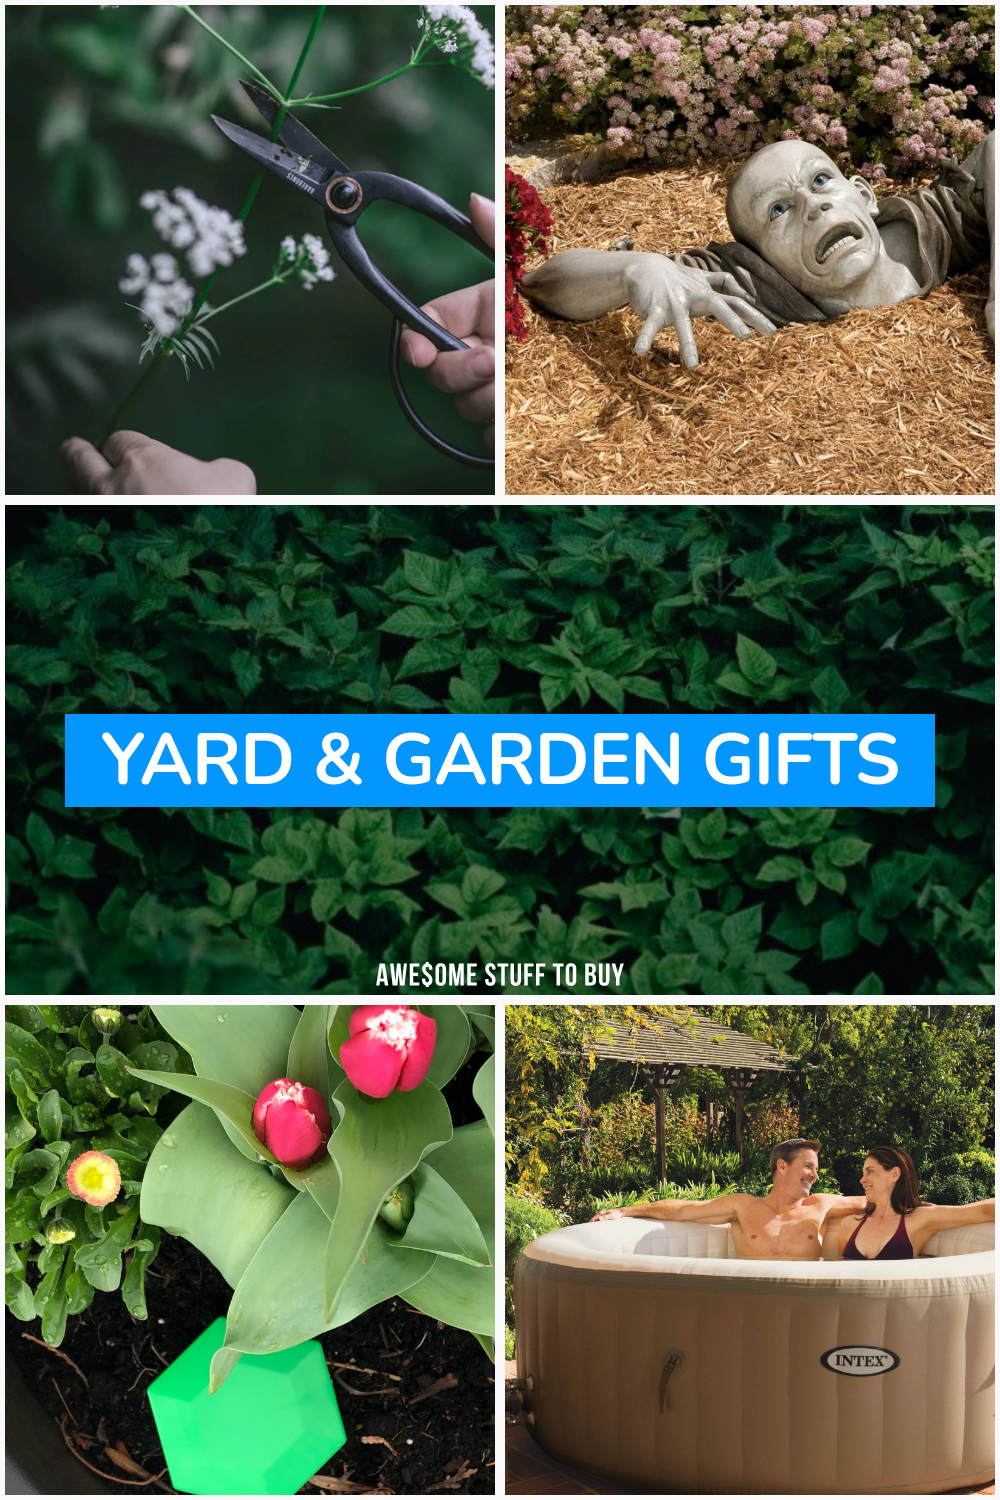 Yard & Garden Gifts // Awesome Stuff to Buy